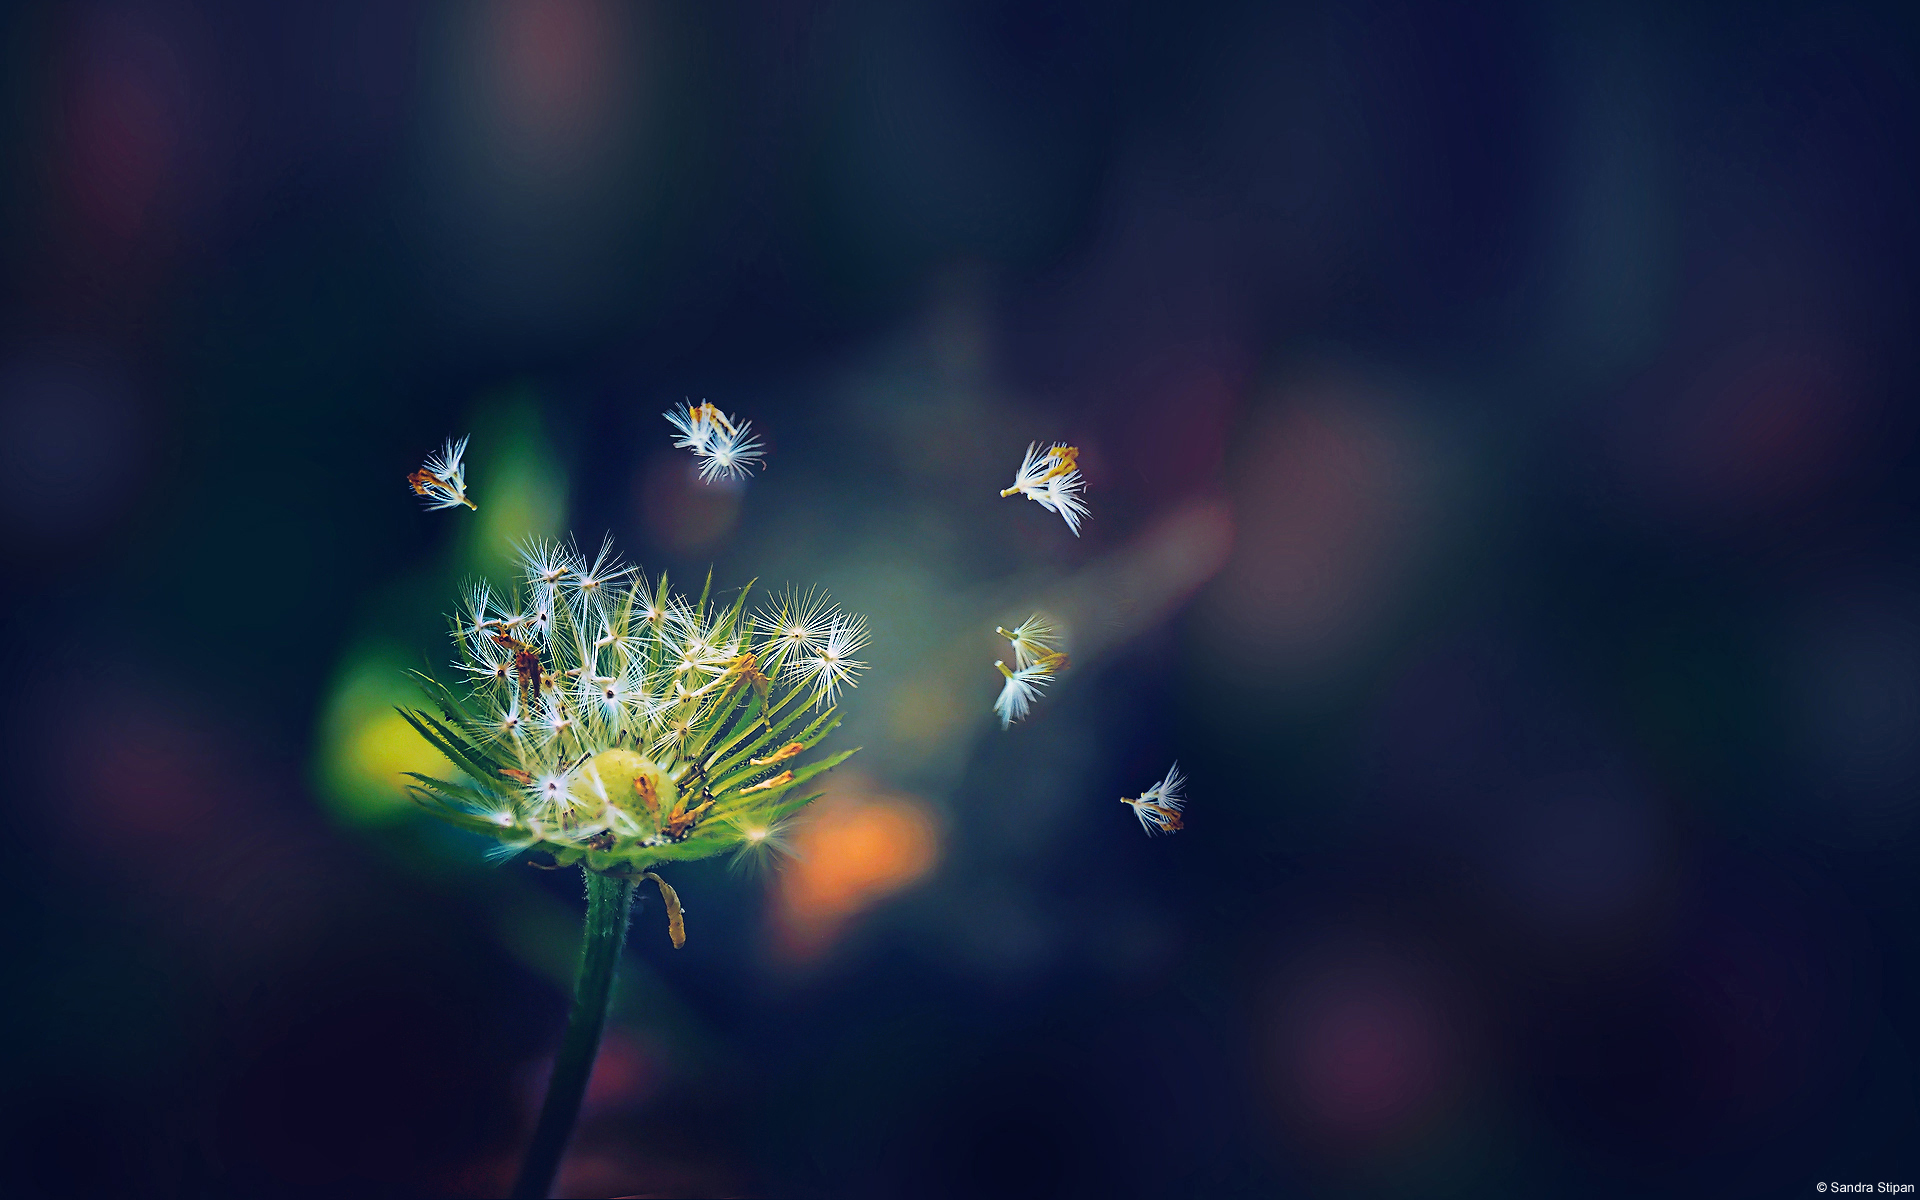 Dandelion Flies